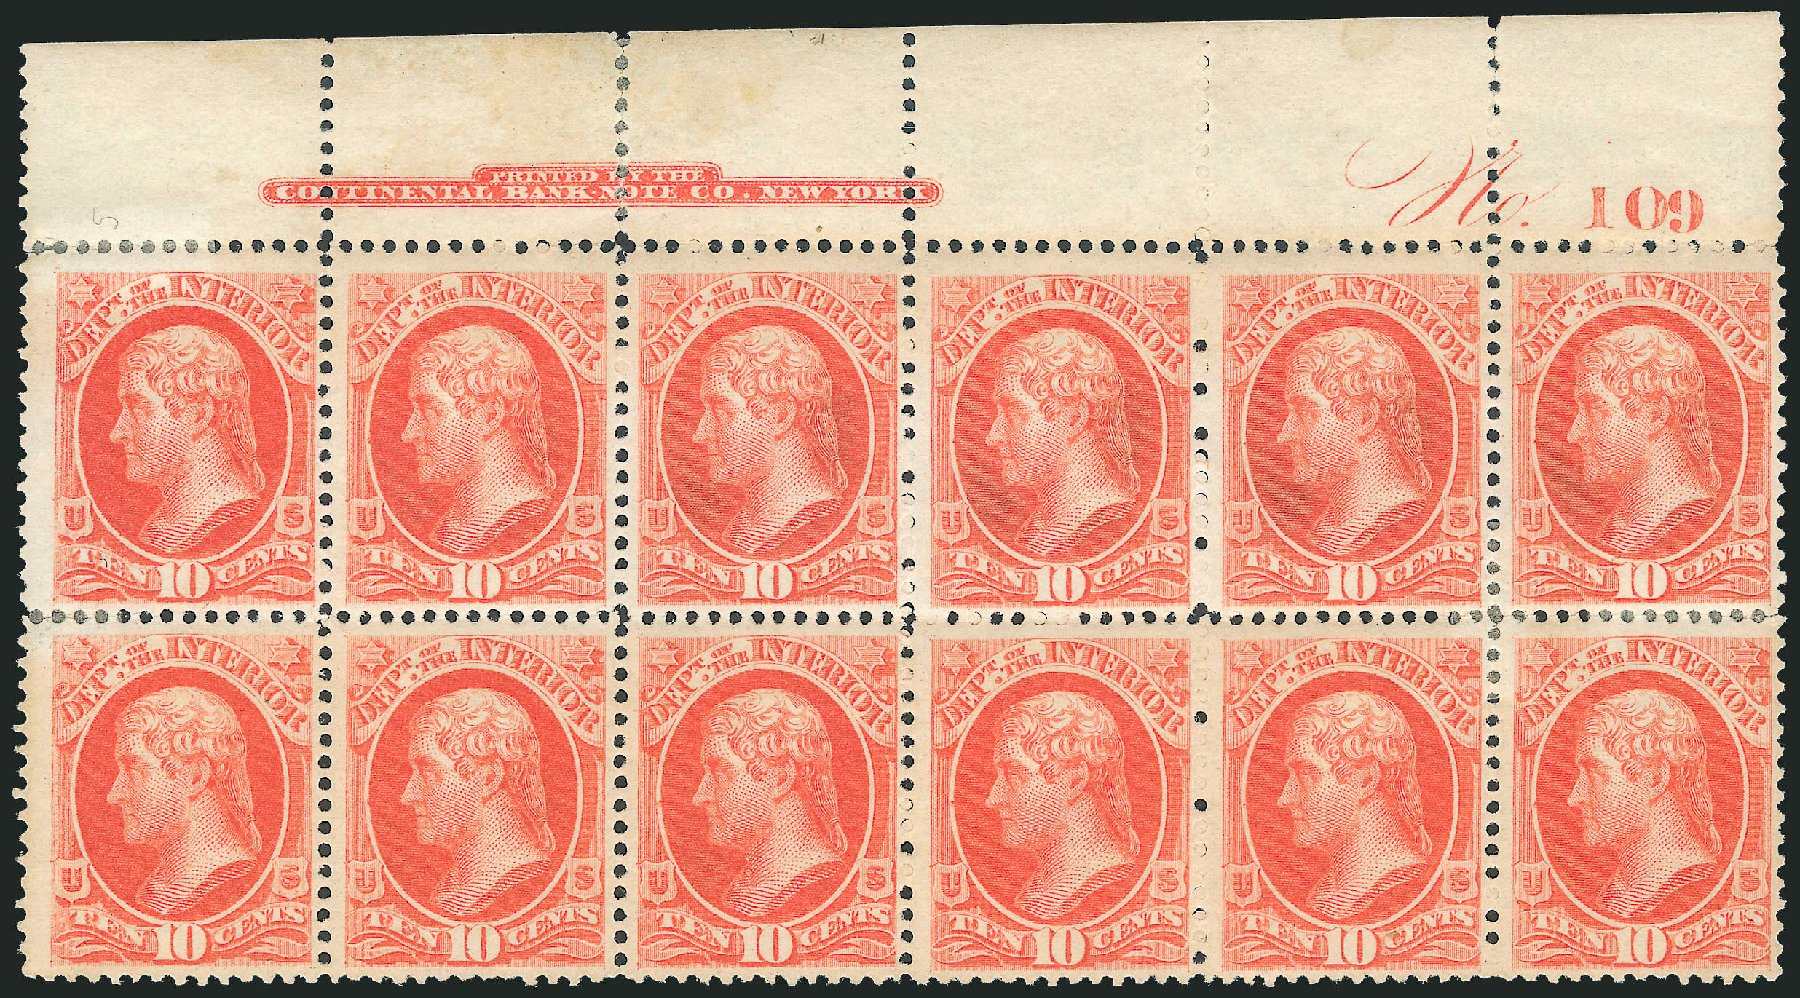 Value of US Stamp Scott O19 - 10c 1873 Interior Official. Robert Siegel Auction Galleries, Mar 2013, Sale 1040, Lot 2152